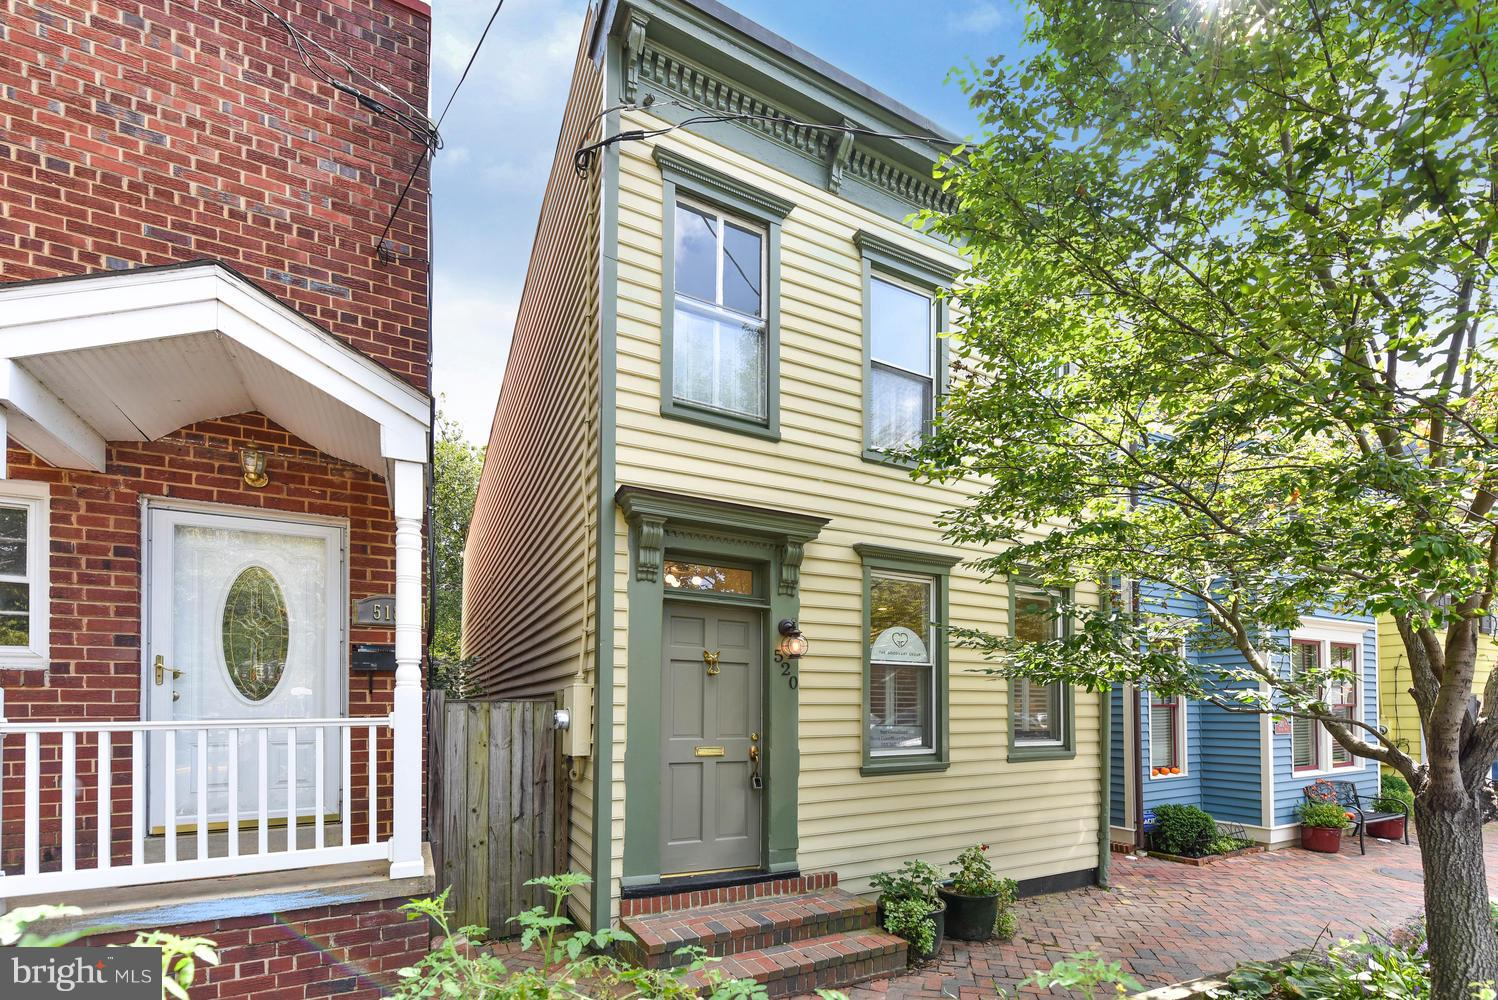 Located in popular SE quadrant of Old Town.1870's TH harmoniously combines historic charm/modern luxuries. Enjoy HWF on ML, bright rooms thru/out, gas fp, arched doorways, sep DR+LR, large reno KIT & desirable outdoor space w/patio. MBR w/2 closets+spacious attic. Updated baths. NEW PARKING PAD INSTALLED (1 CAR) in back. Additional perks - 4.5 blocks to King St/river for shops/dining+more.